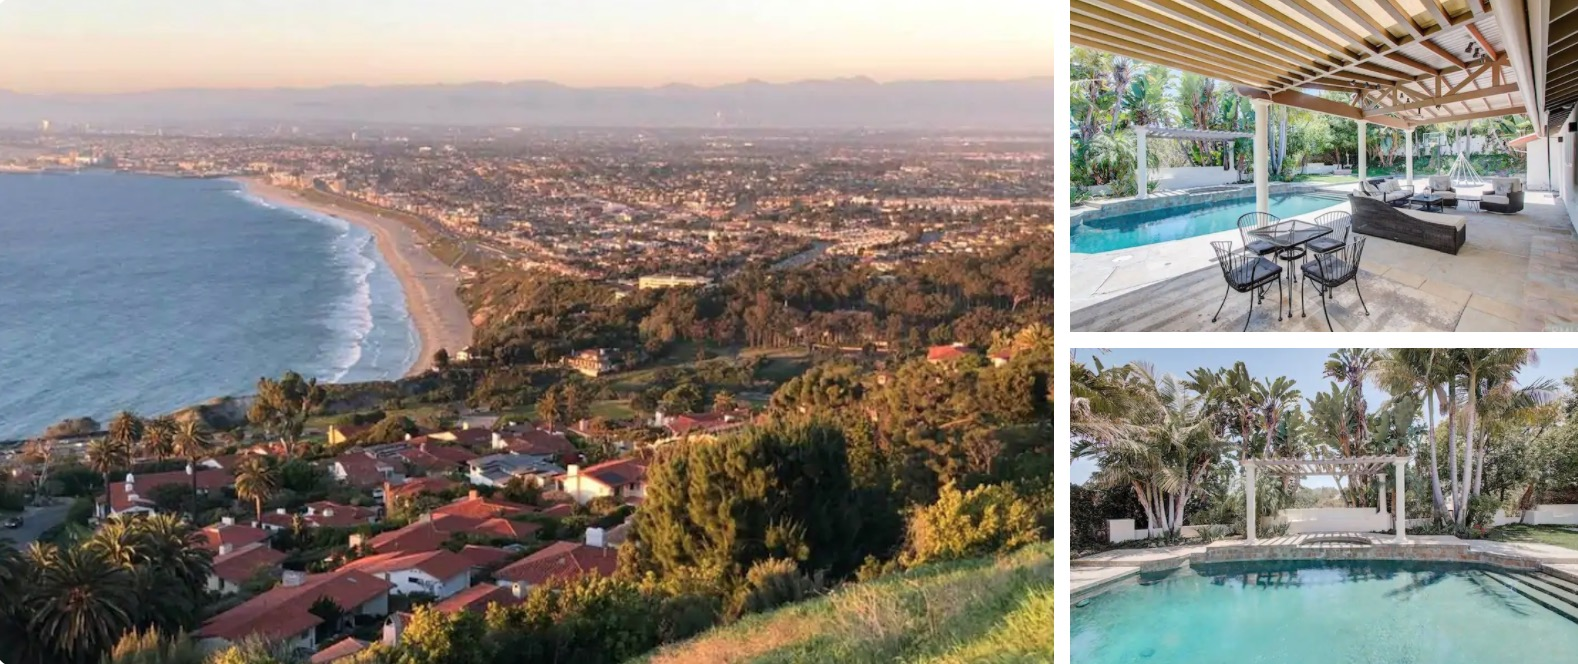 Rolling Hills Resort with Private Pool & Orchard